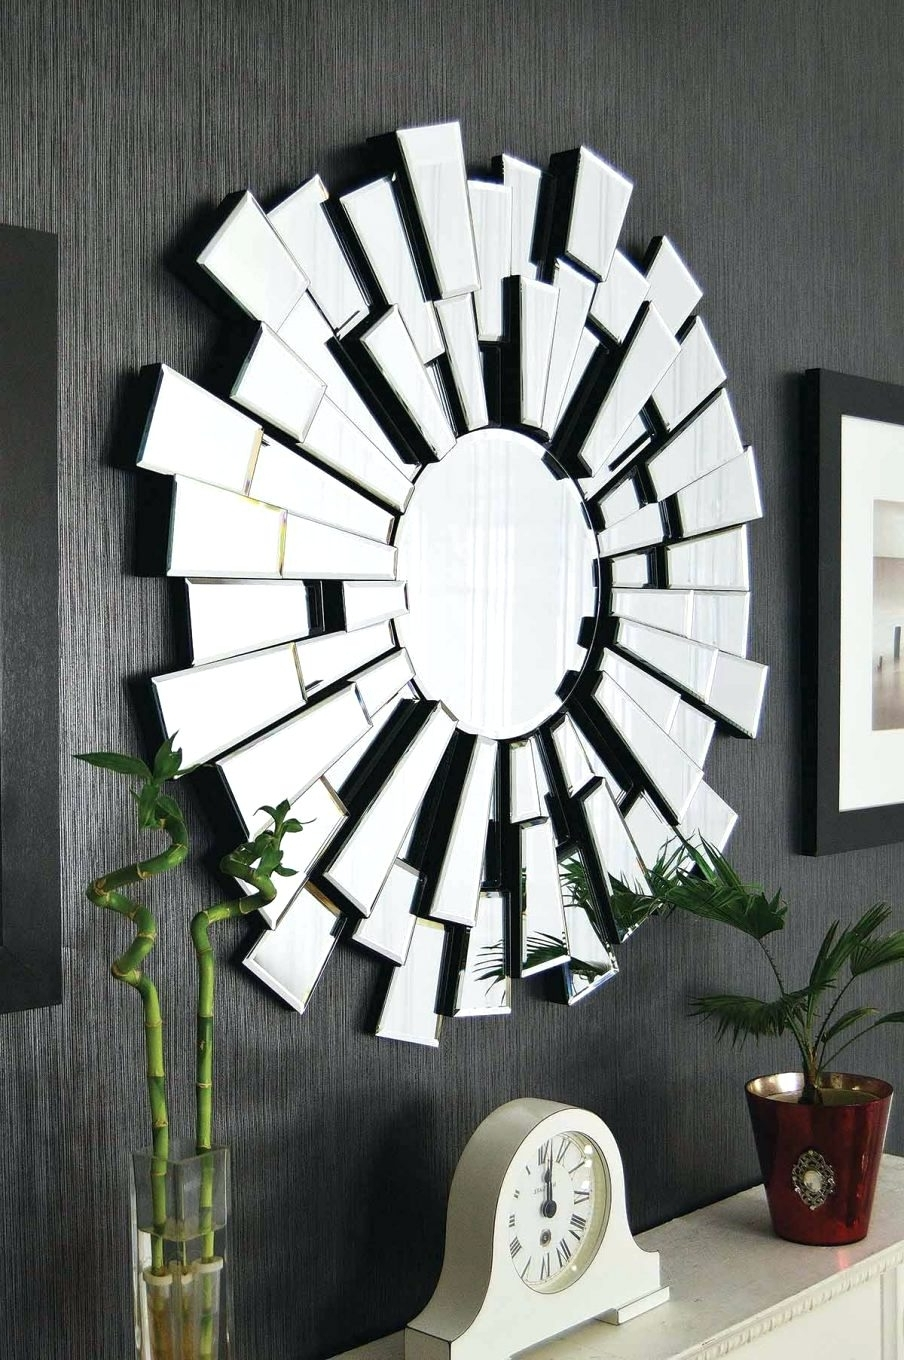 Wall Mirrors ~ Wall Art Mirrors Contemporary Wall Mirrors For Newest Wall Art Mirrors Contemporary (View 13 of 15)